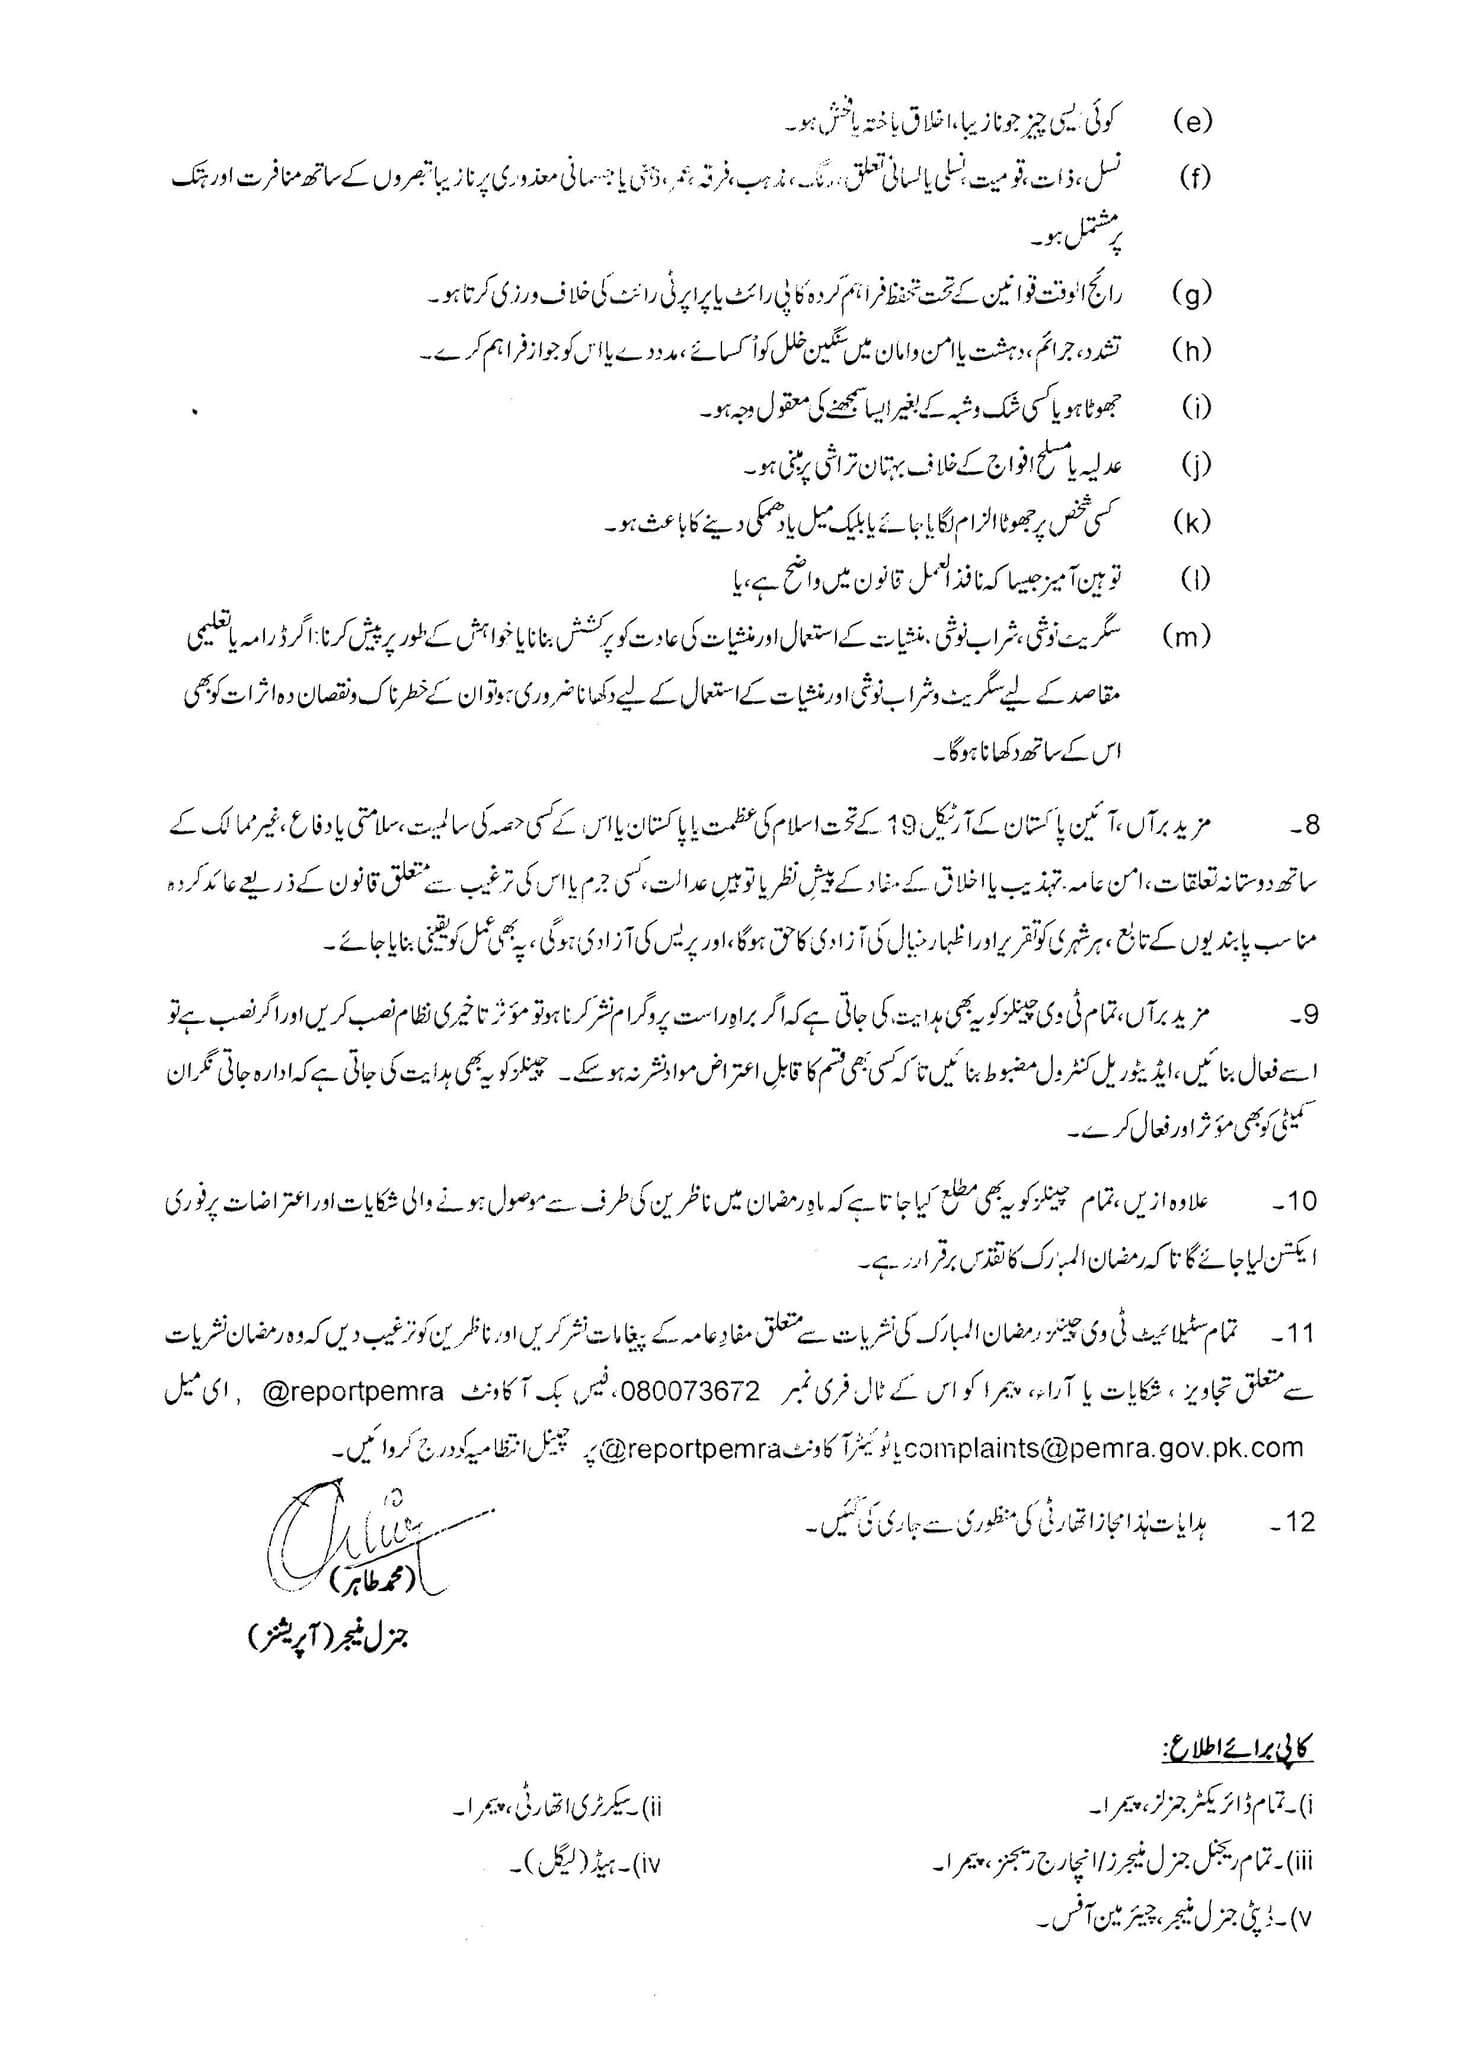 ramazan transmission rules by pemra (4)